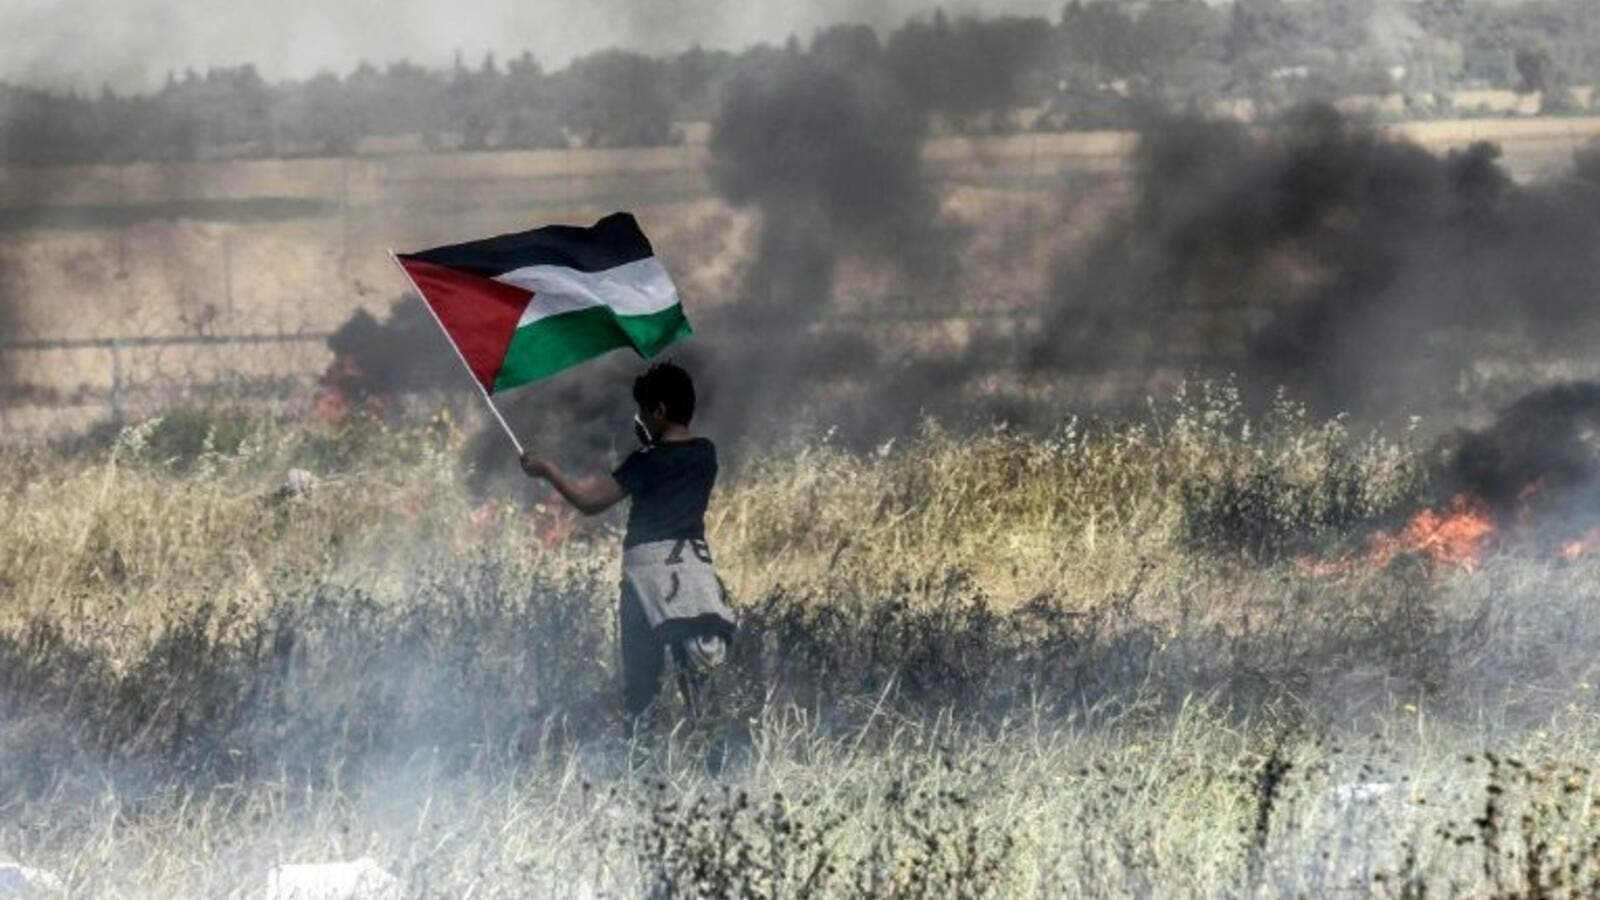 A Palestinian boy holds his national flag during clashes with Israeli security forces on the Gaza-Israel border. (AFP/ File Photo)